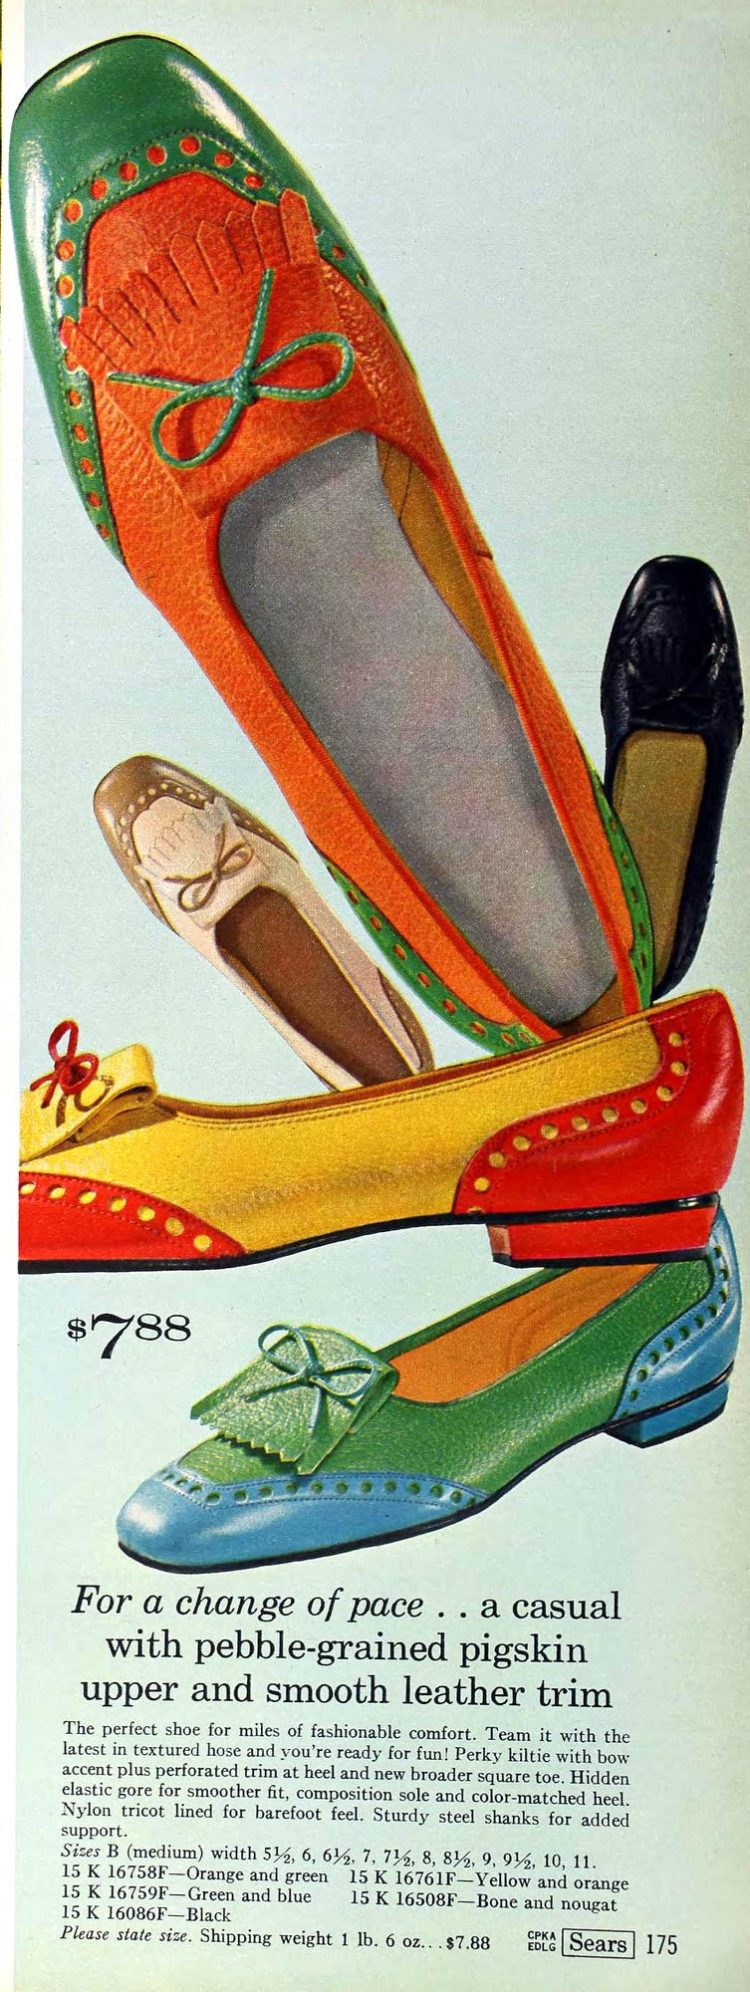 Colorful flats for women - Shoes from the sixties